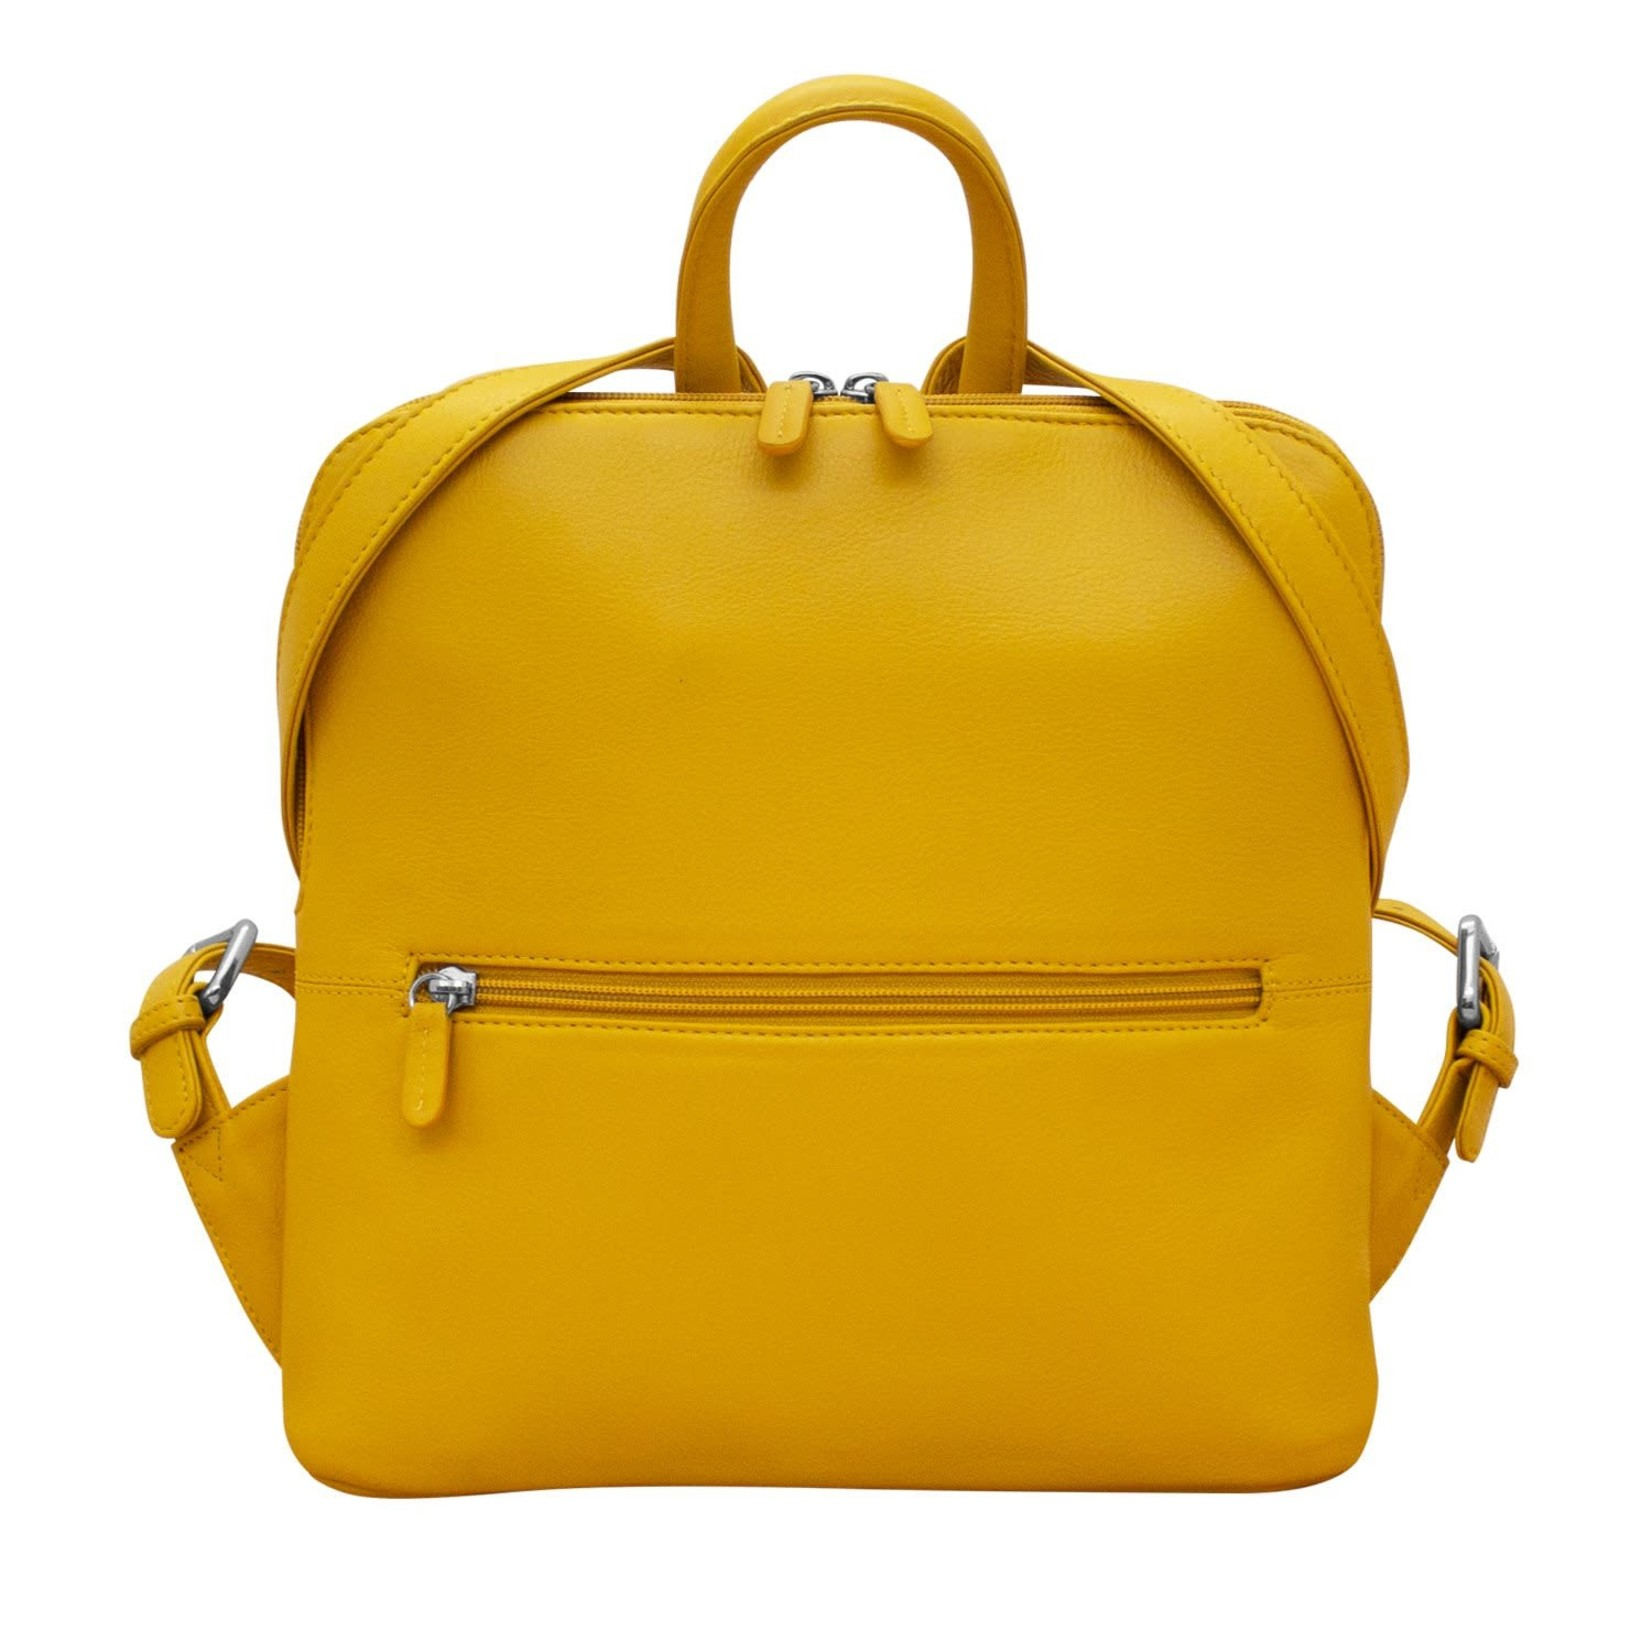 Leather Handbags and Accessories 6503 Yellow - Small Backpack